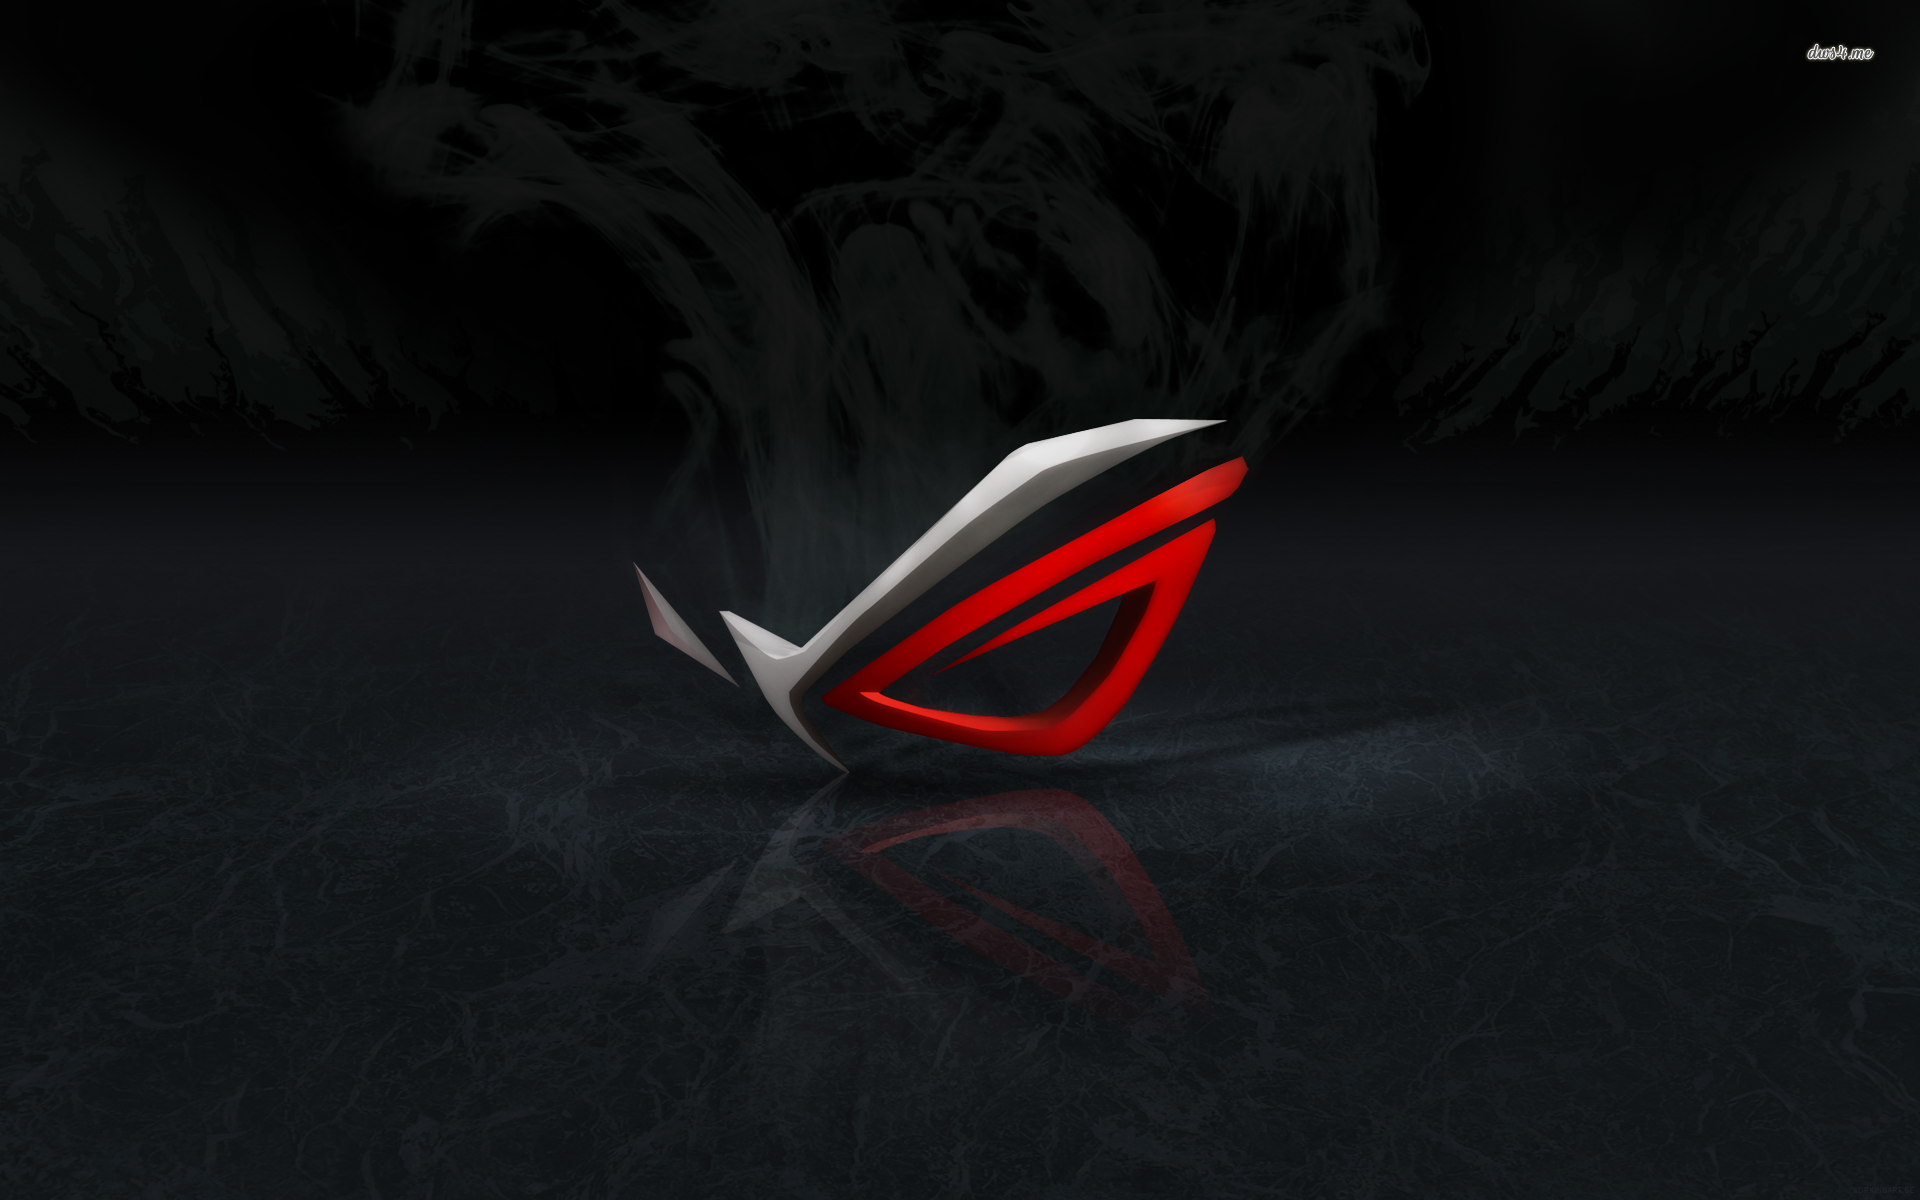 Asus ROG wallpaper   Computer wallpapers   1133 1920x1200